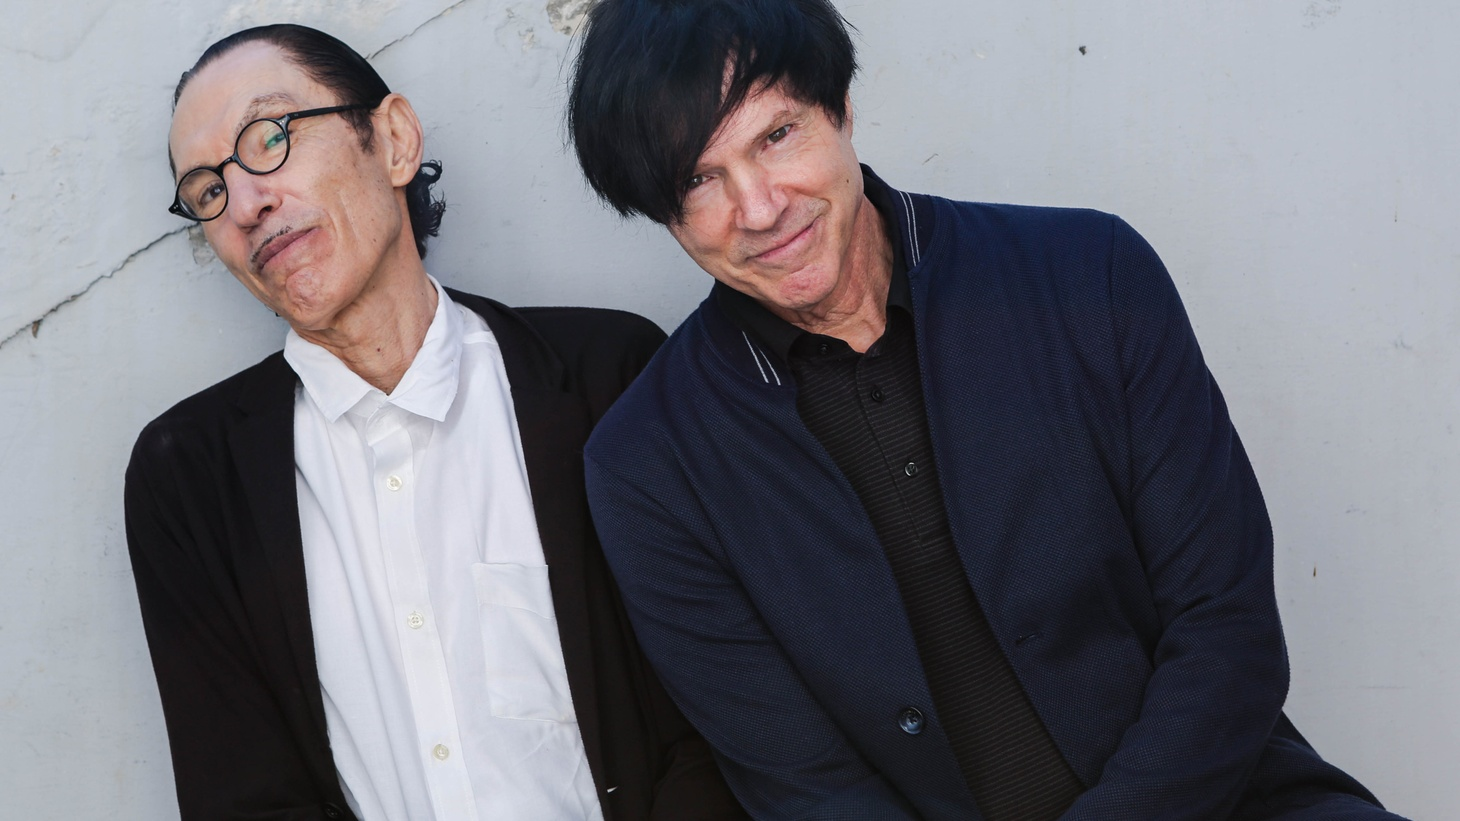 Sparks plays stripped-down acoustic versions of art rock songs off their new album Hippopotamus, along with a classic song, and the theme to Bookworm, Where Would We Be without Books.